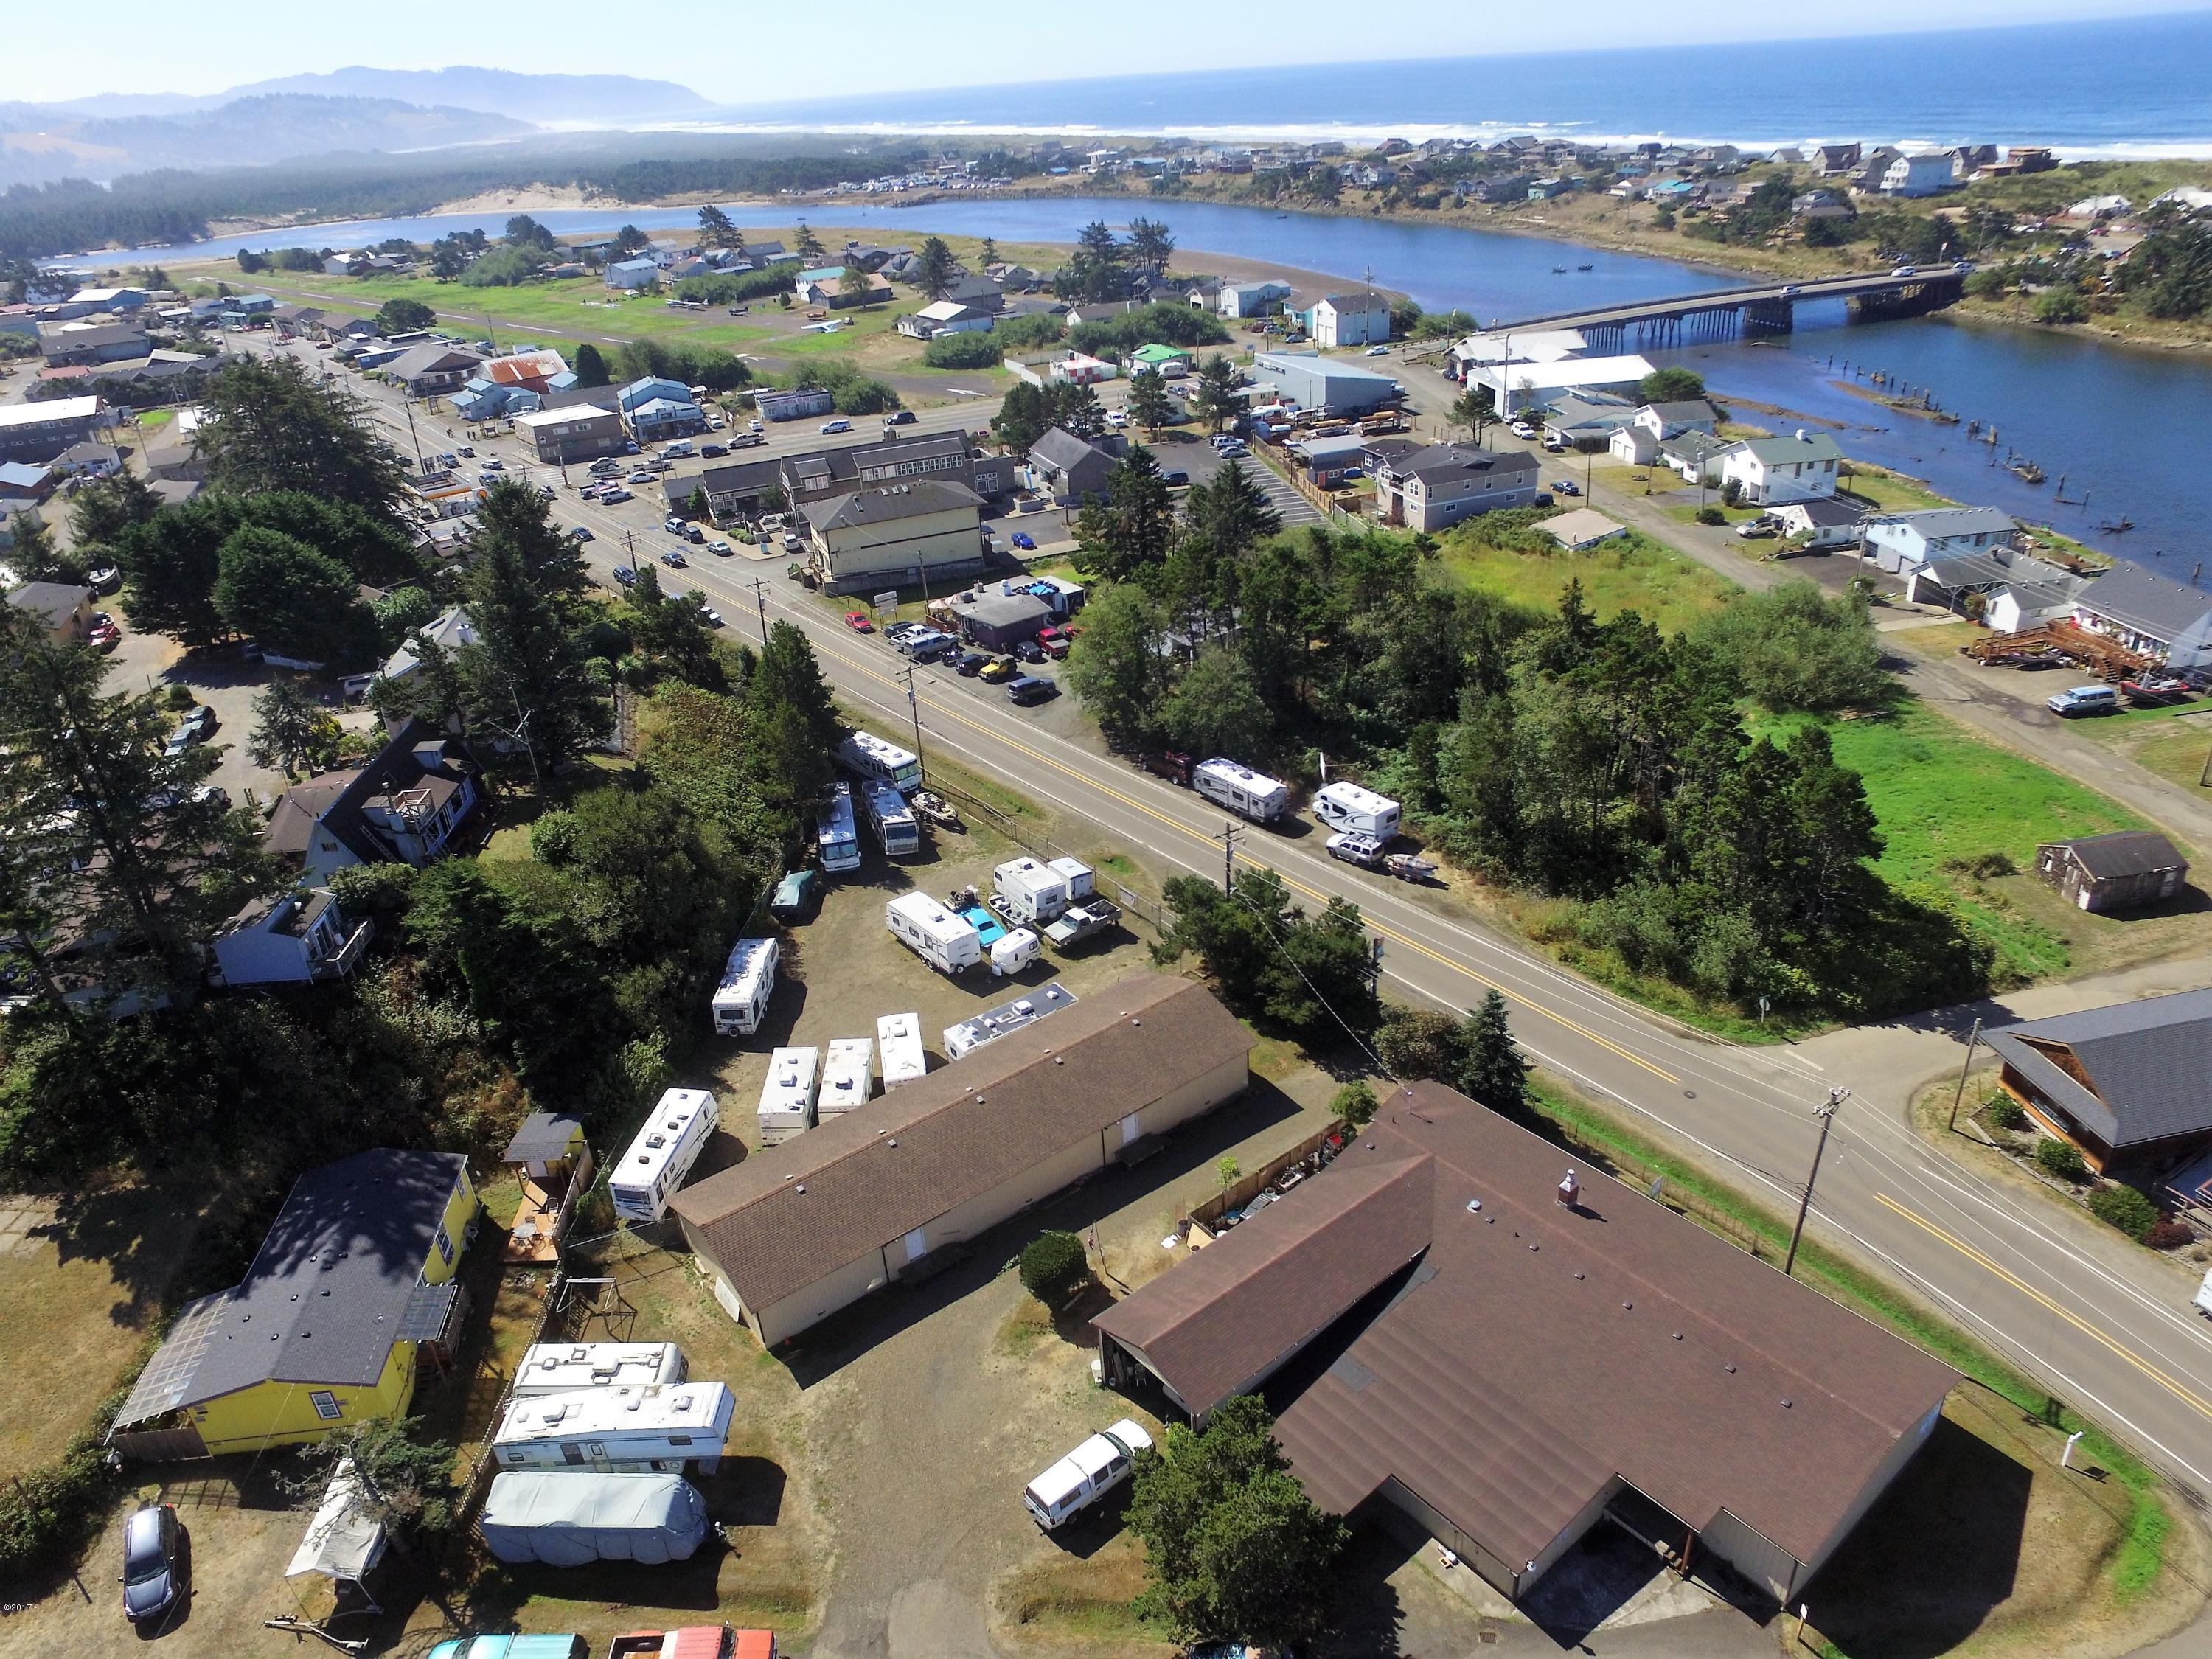 34825 Brooten Rd, Pacific City, OR 97135 - DJI_0150